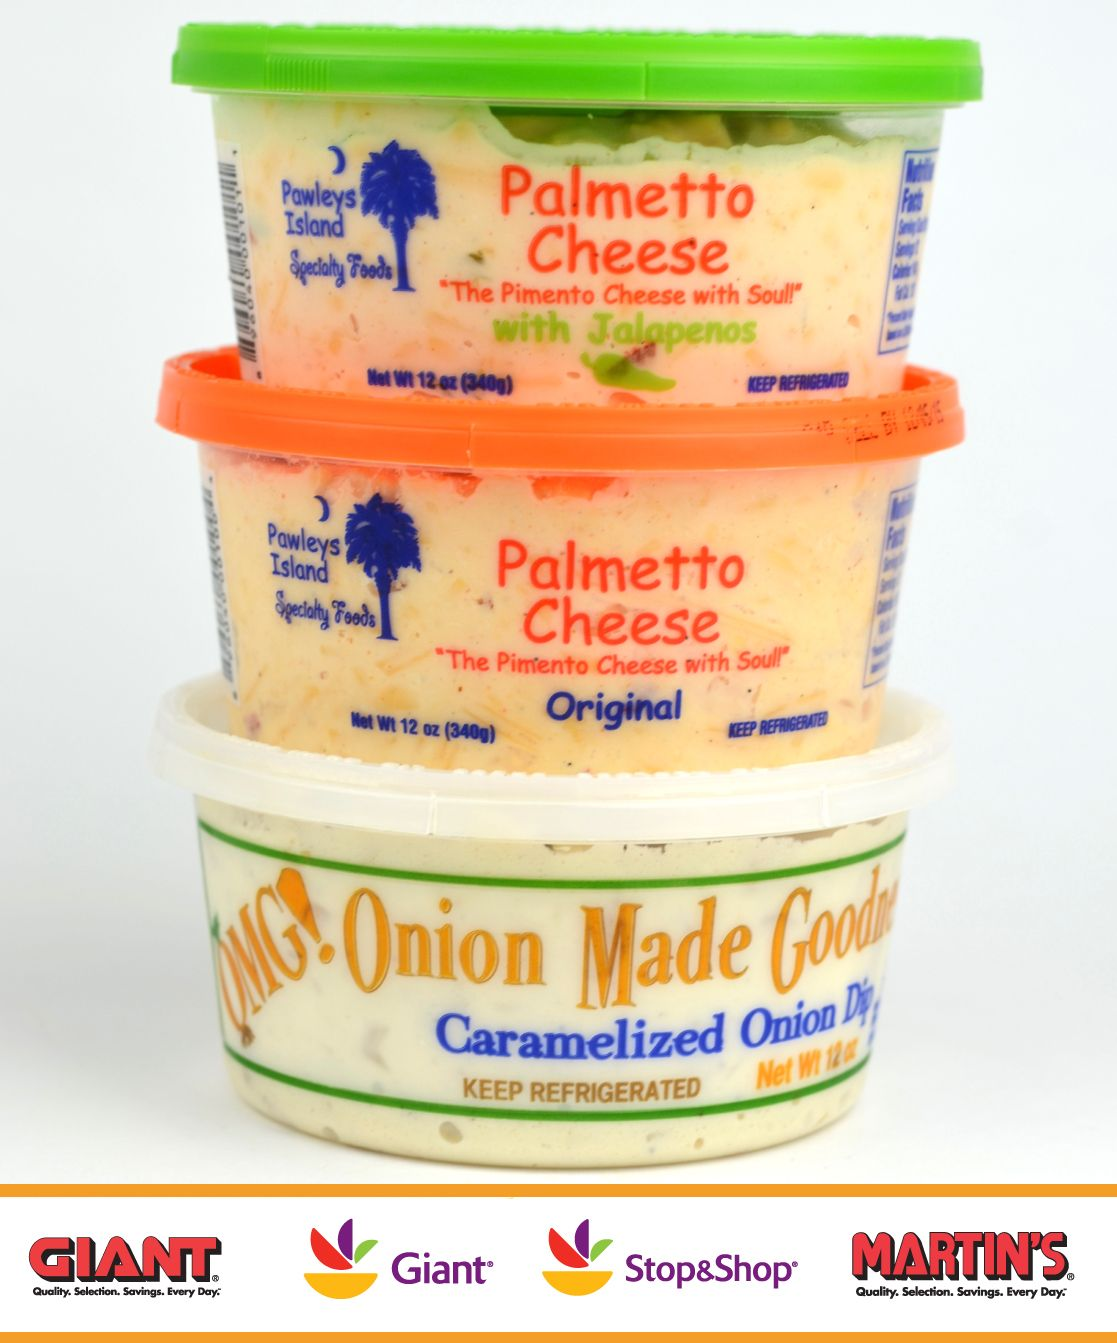 Palmetto Cheese And Omg Dip Are On Sale For 1 Off At All Giant Foods Stop Shop And Martins Food Markets From Oc Palmetto Cheese Giant Food Pimento Cheese